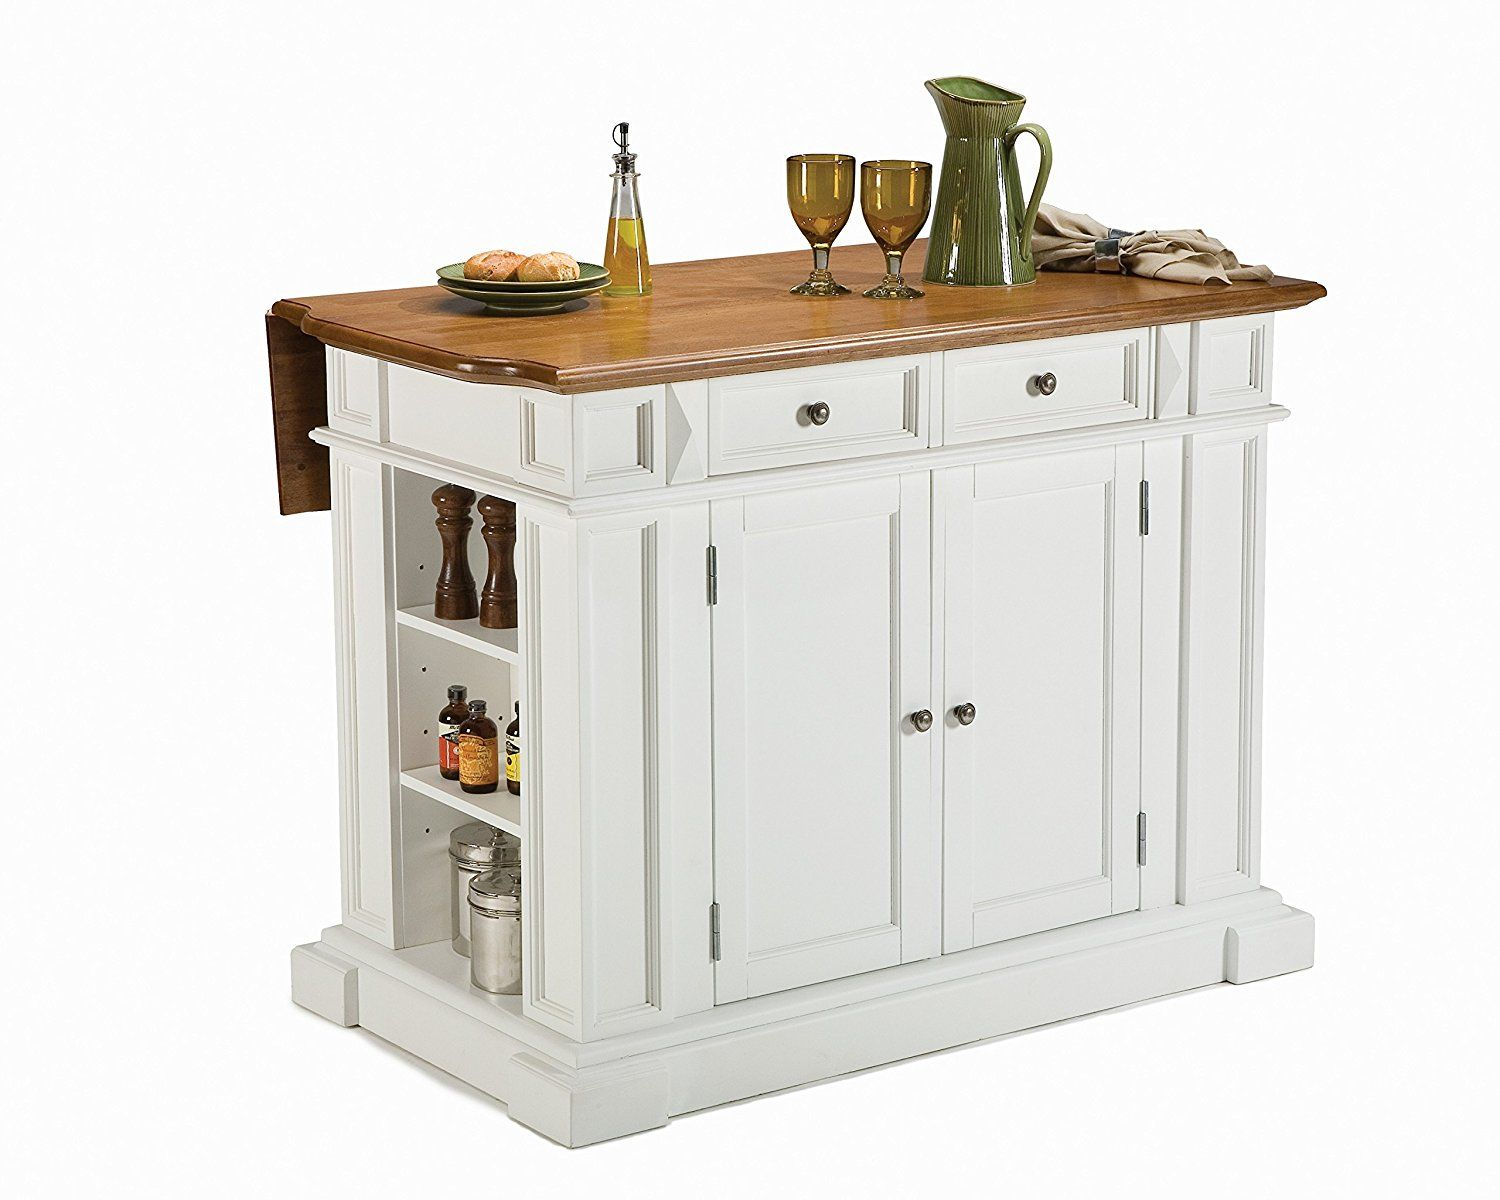 Ordinaire Amazon.com: Home Styles 5002 94 Kitchen Island, White And Distressed Oak  Finish: Home U0026 Kitchen